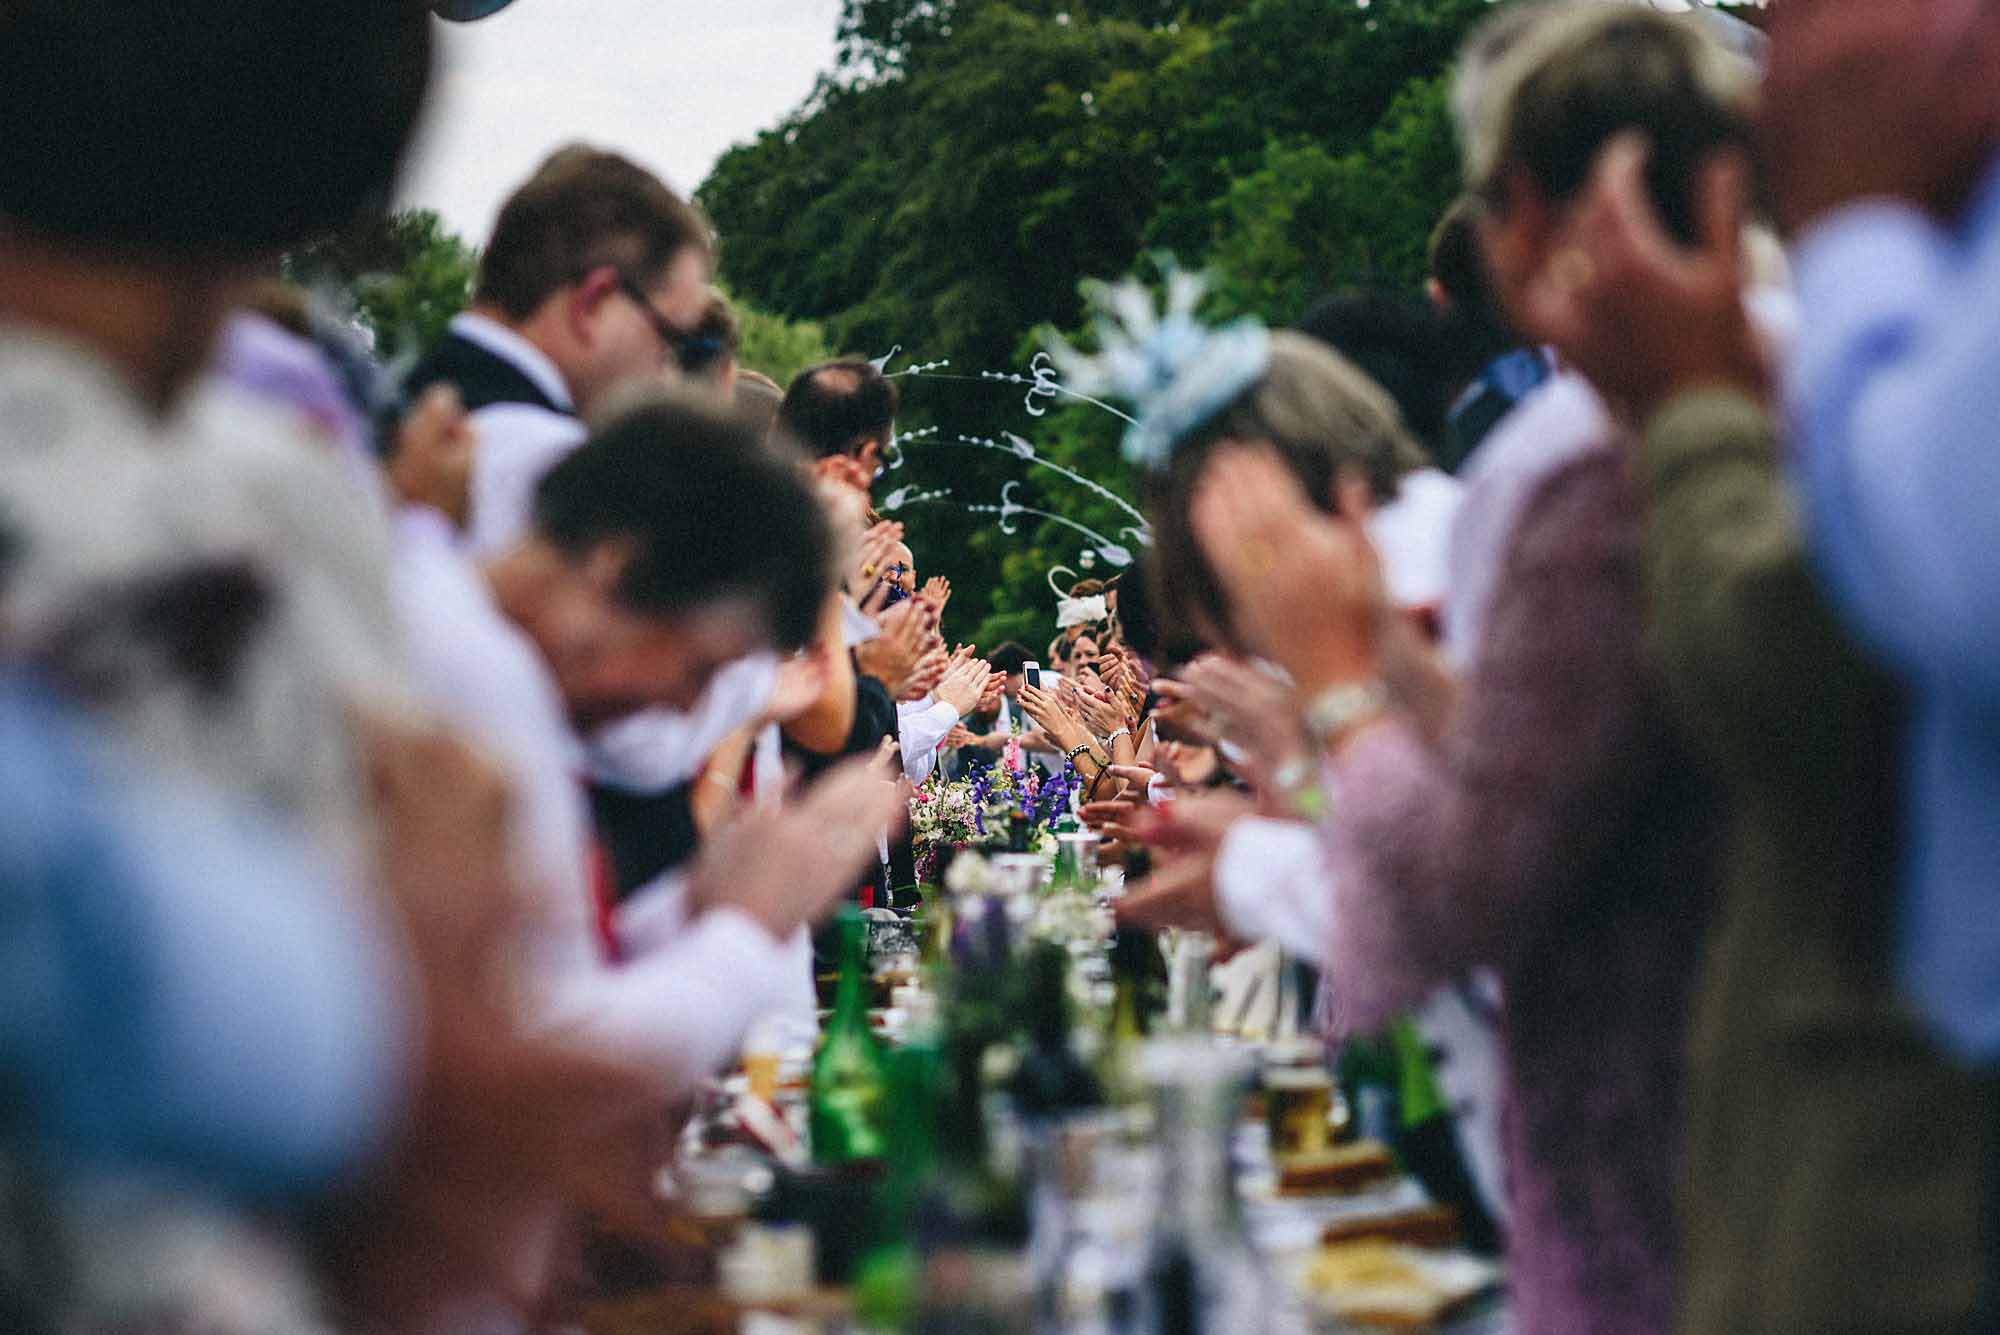 Narborough Hall Gardens wedding photography 39 Completed